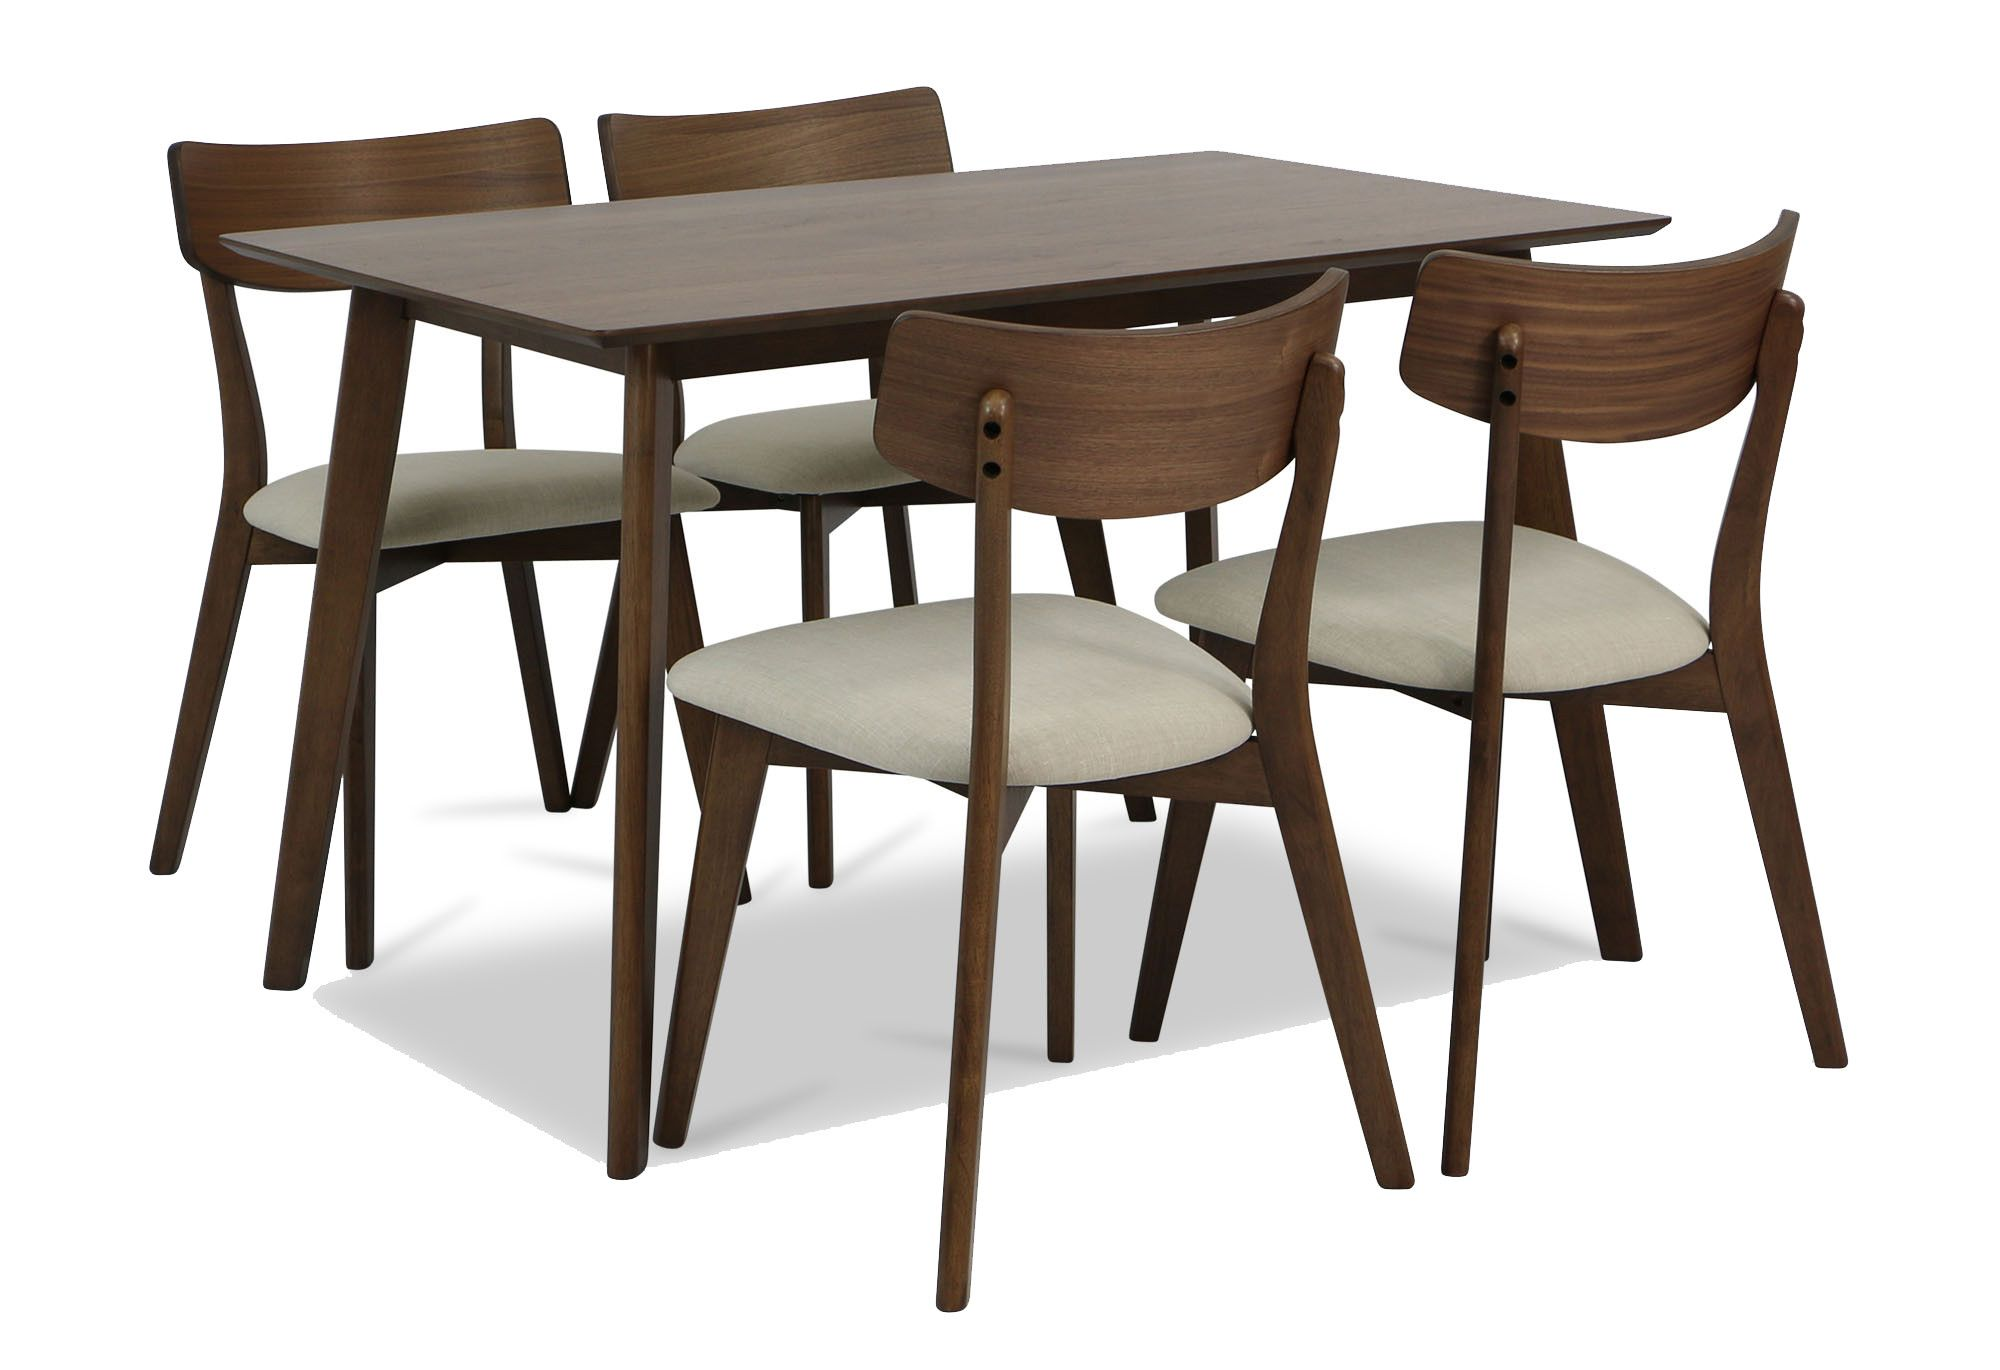 Surprising Ross Dining Table Set B 1 4 Dining Sets Dining Room Gmtry Best Dining Table And Chair Ideas Images Gmtryco